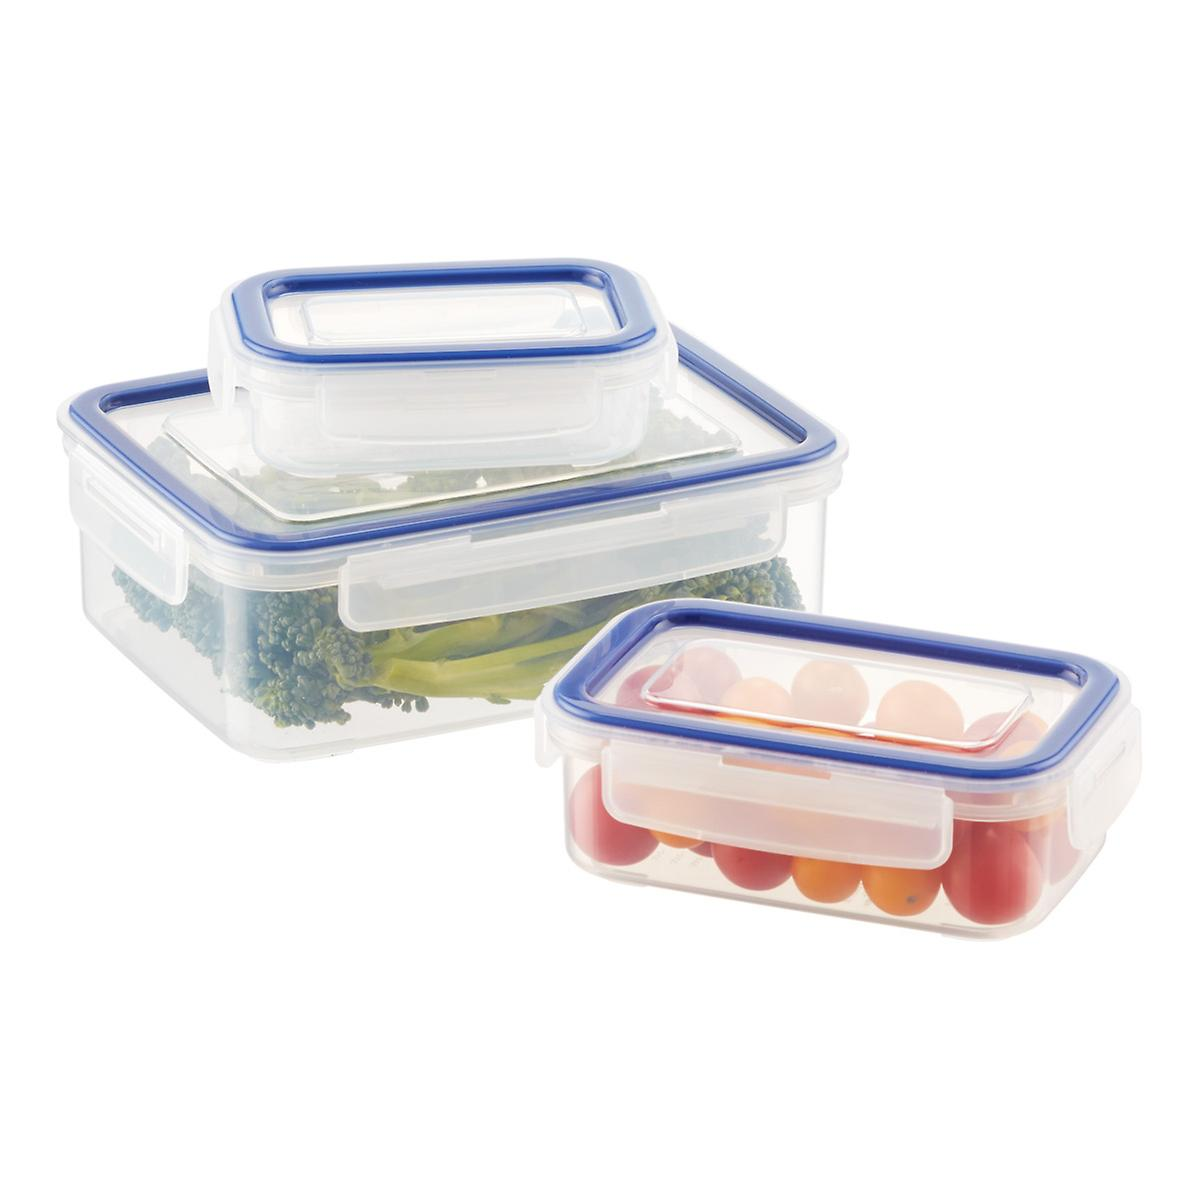 Lustroware Rectangular Food Storage with Silicone Seals